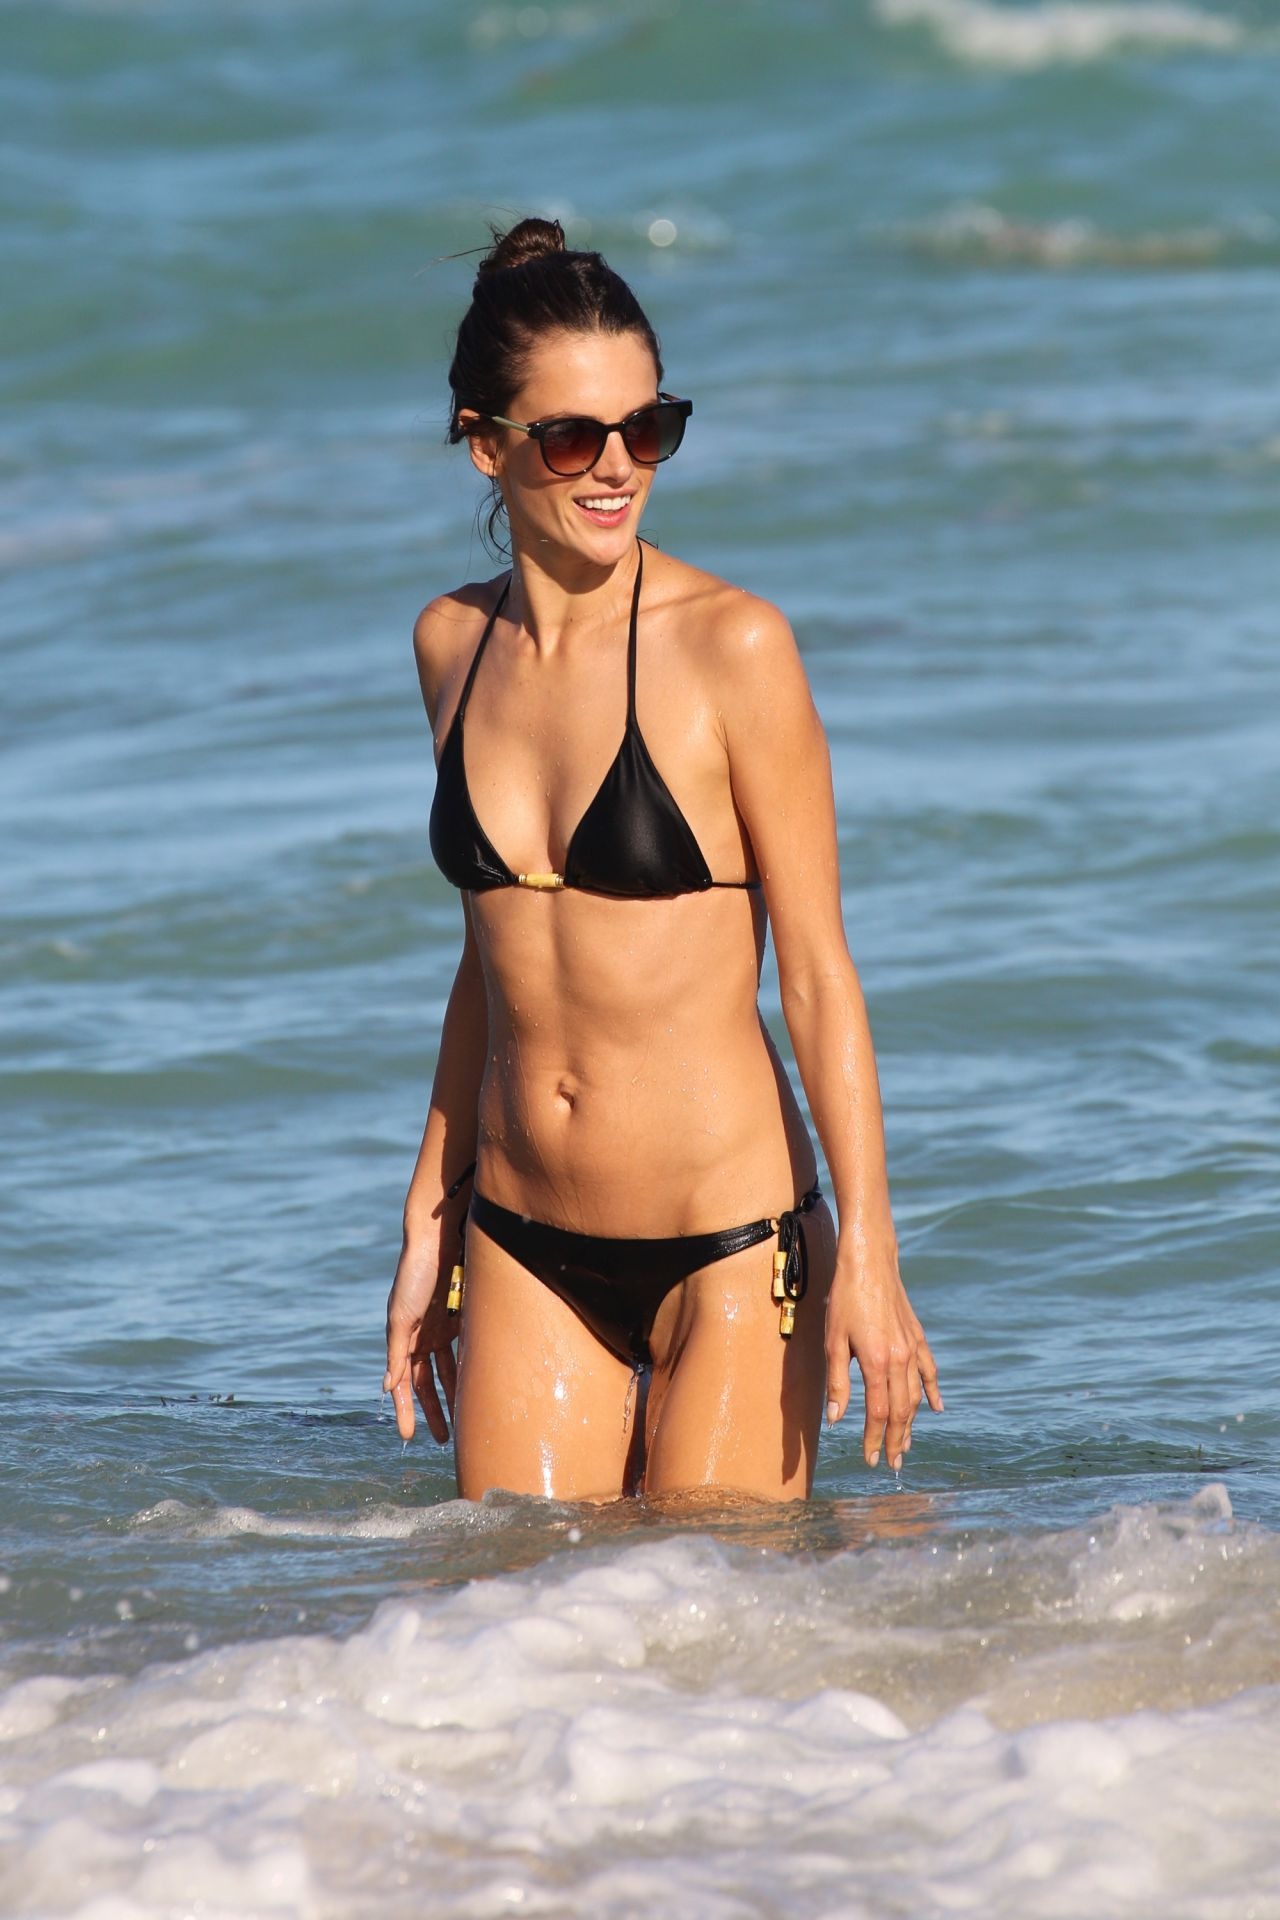 Alessandra Ambrosio in a Bikini at the Beach in Miami - December 2013